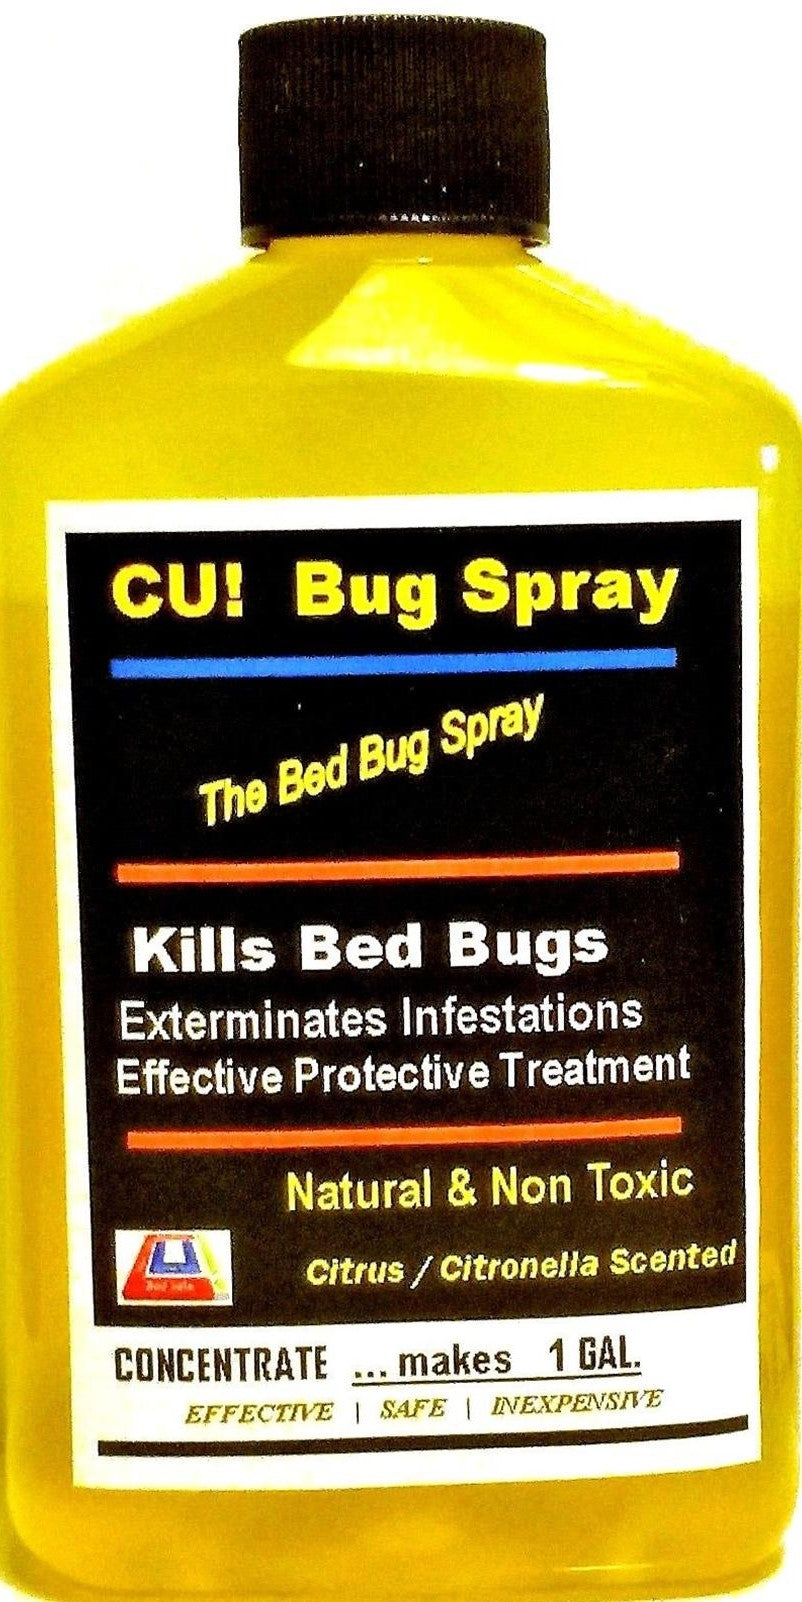 CU! Bug Spray Rids Bed Bugs - CONCENTRATE to make ONE GALLON